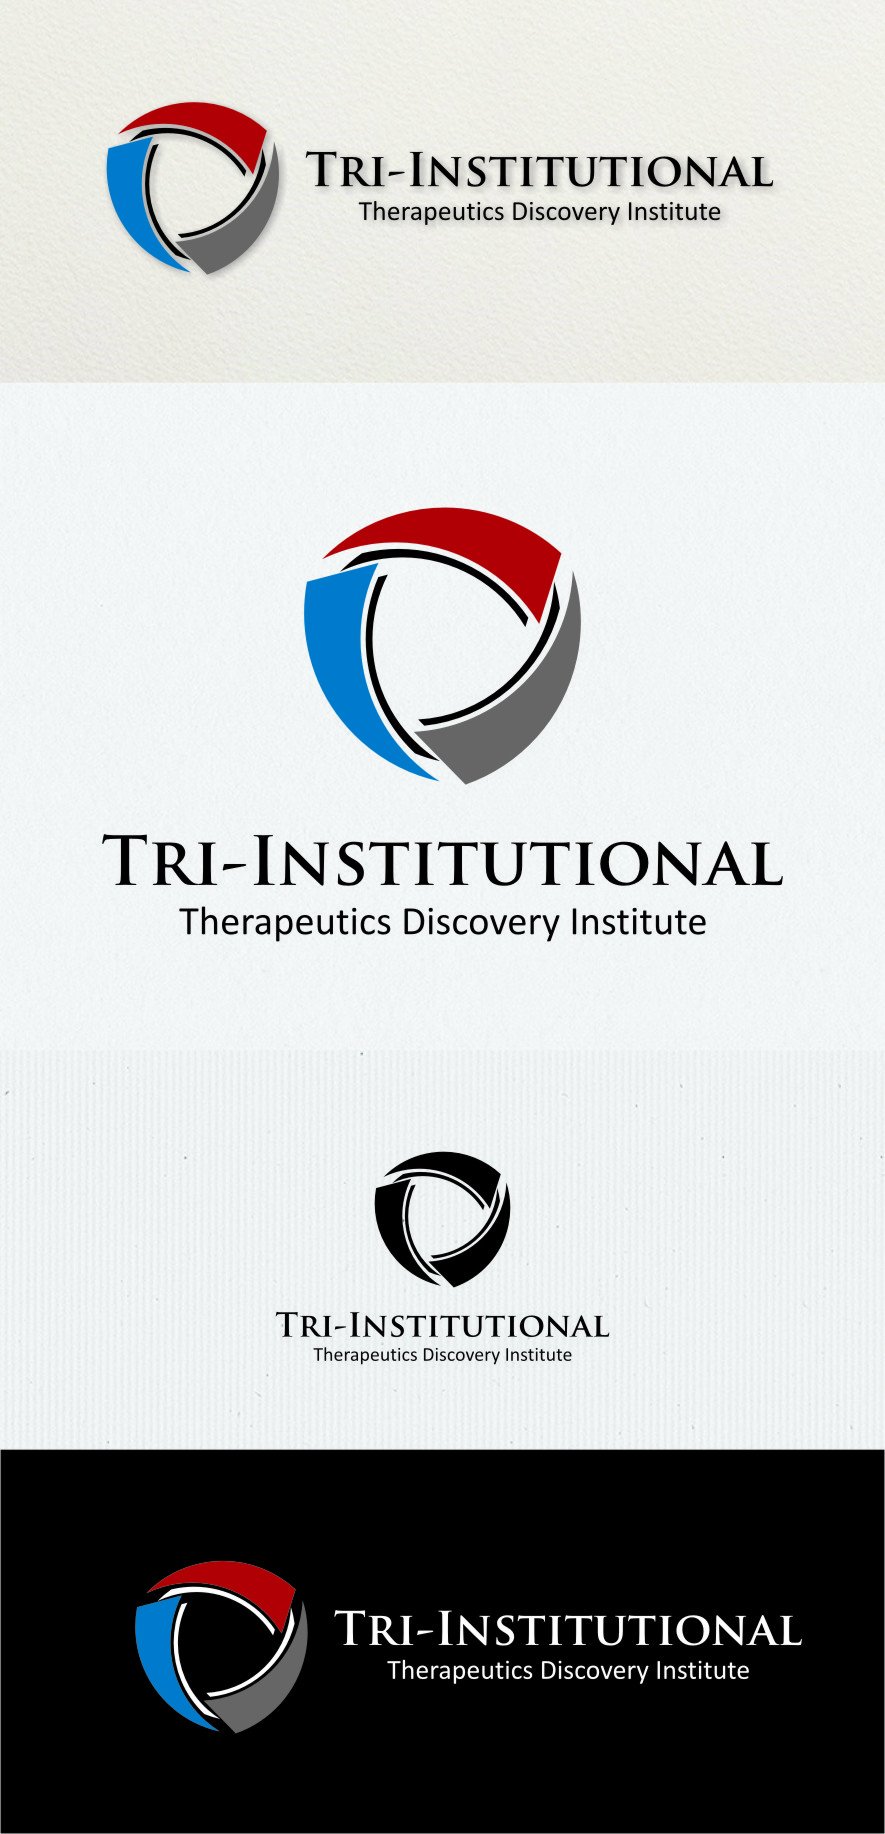 Logo Design by Ngepet_art - Entry No. 93 in the Logo Design Contest Inspiring Logo Design for Tri-Institutional Therapeutics Discovery Institute.